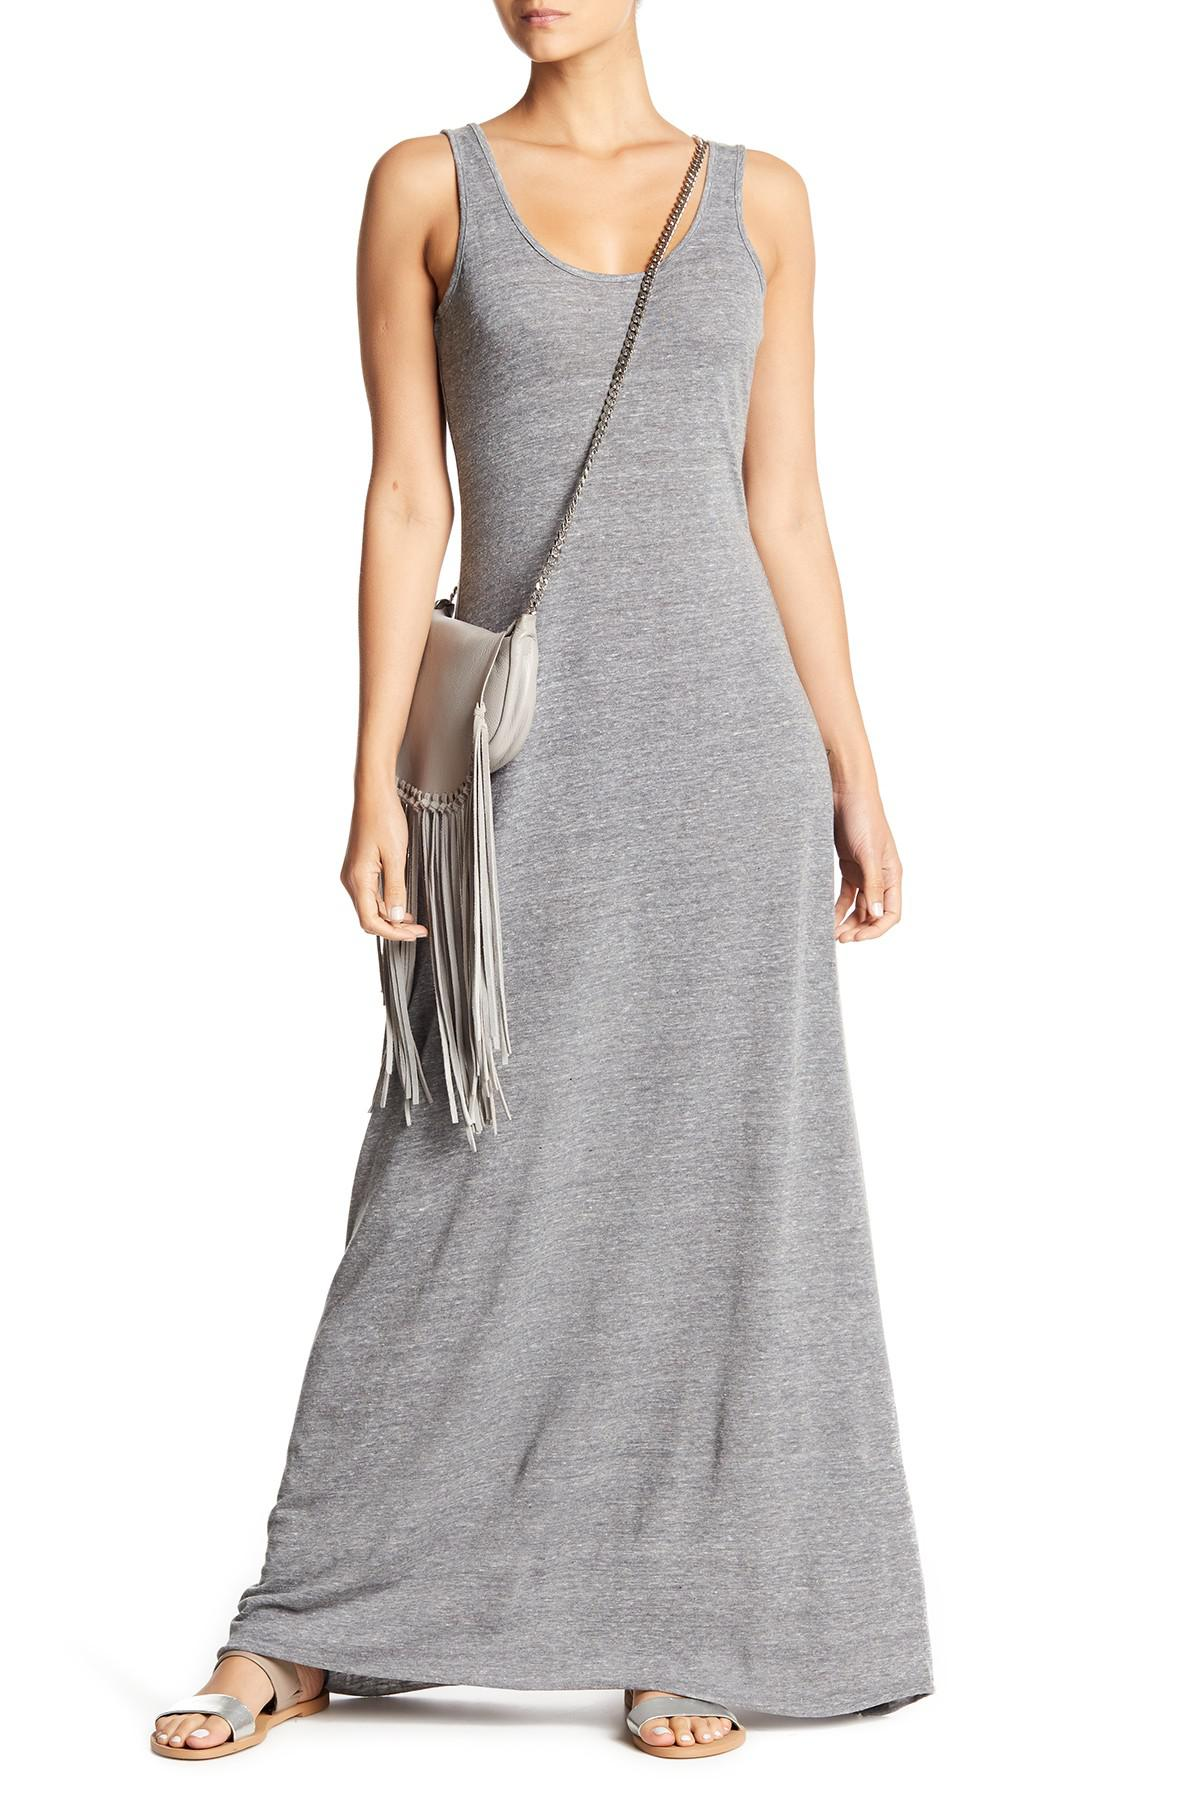 645a21c60f7 Lyst - Alternative Apparel Scoop Neck Tank Maxi Dress in Gray